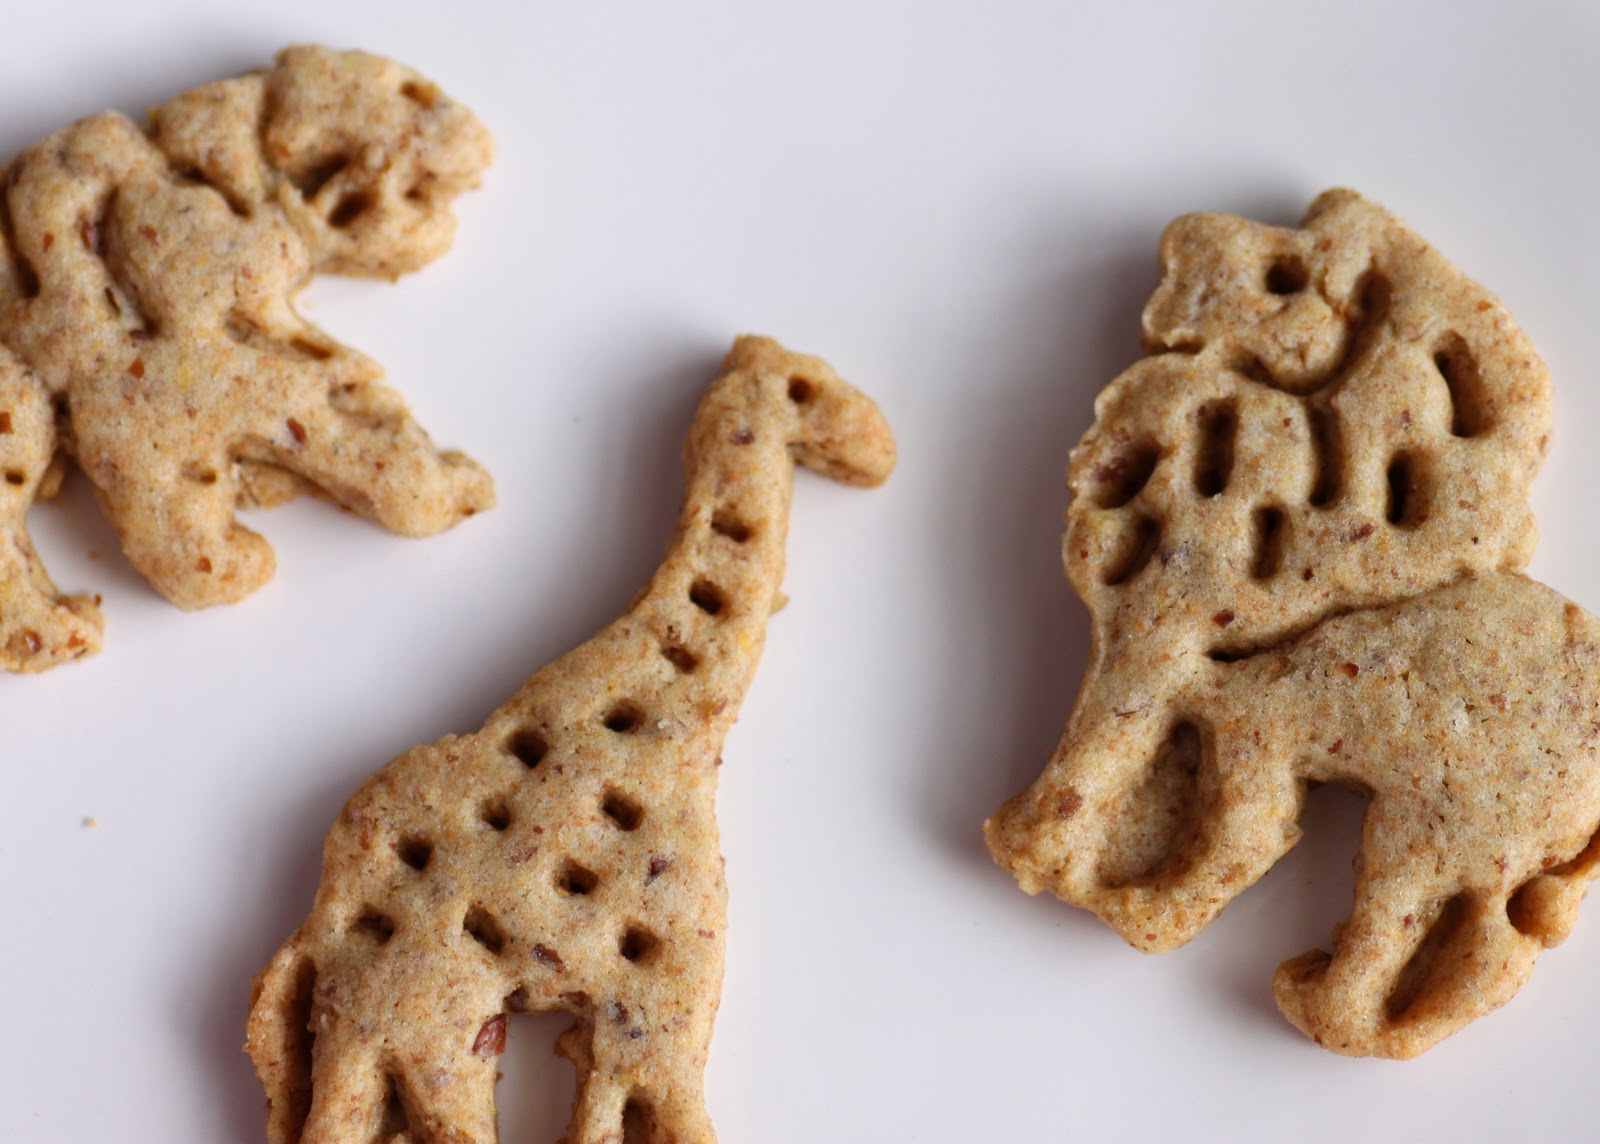 The Cilantropist: Whole Grain Animal Crackers